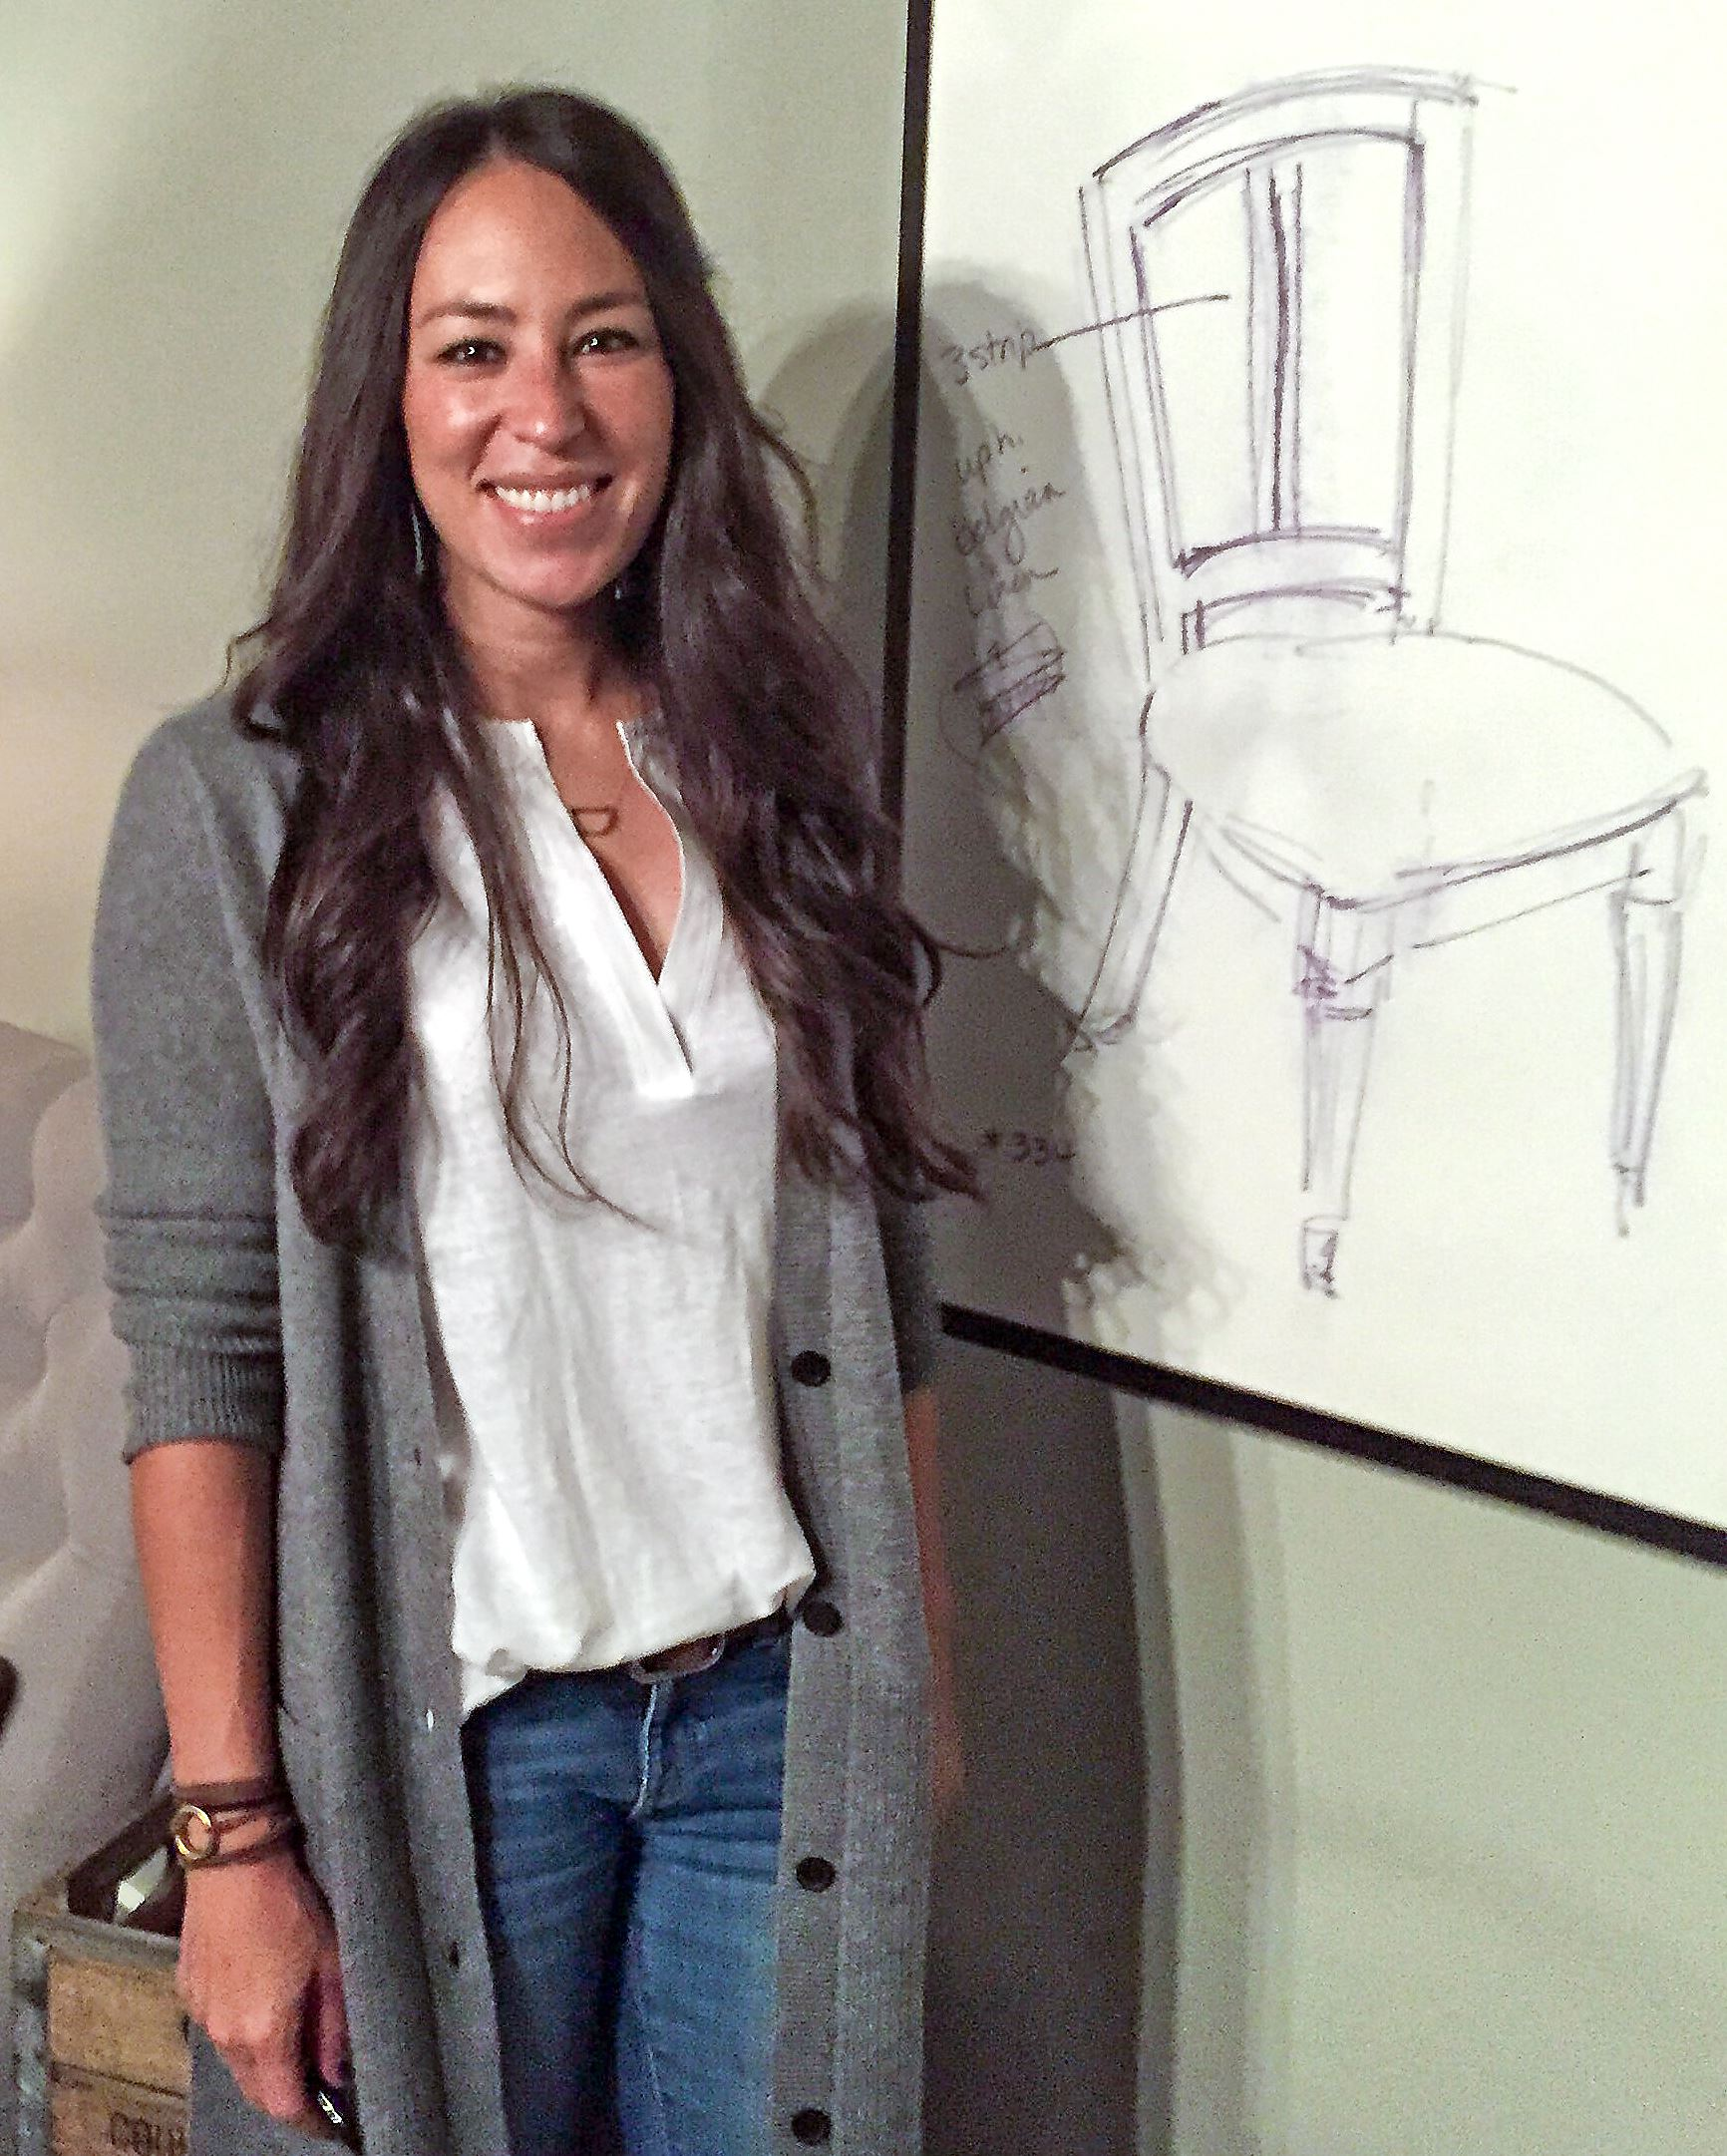 hgtv 39 s 39 fixer upper 39 host introduces furniture line